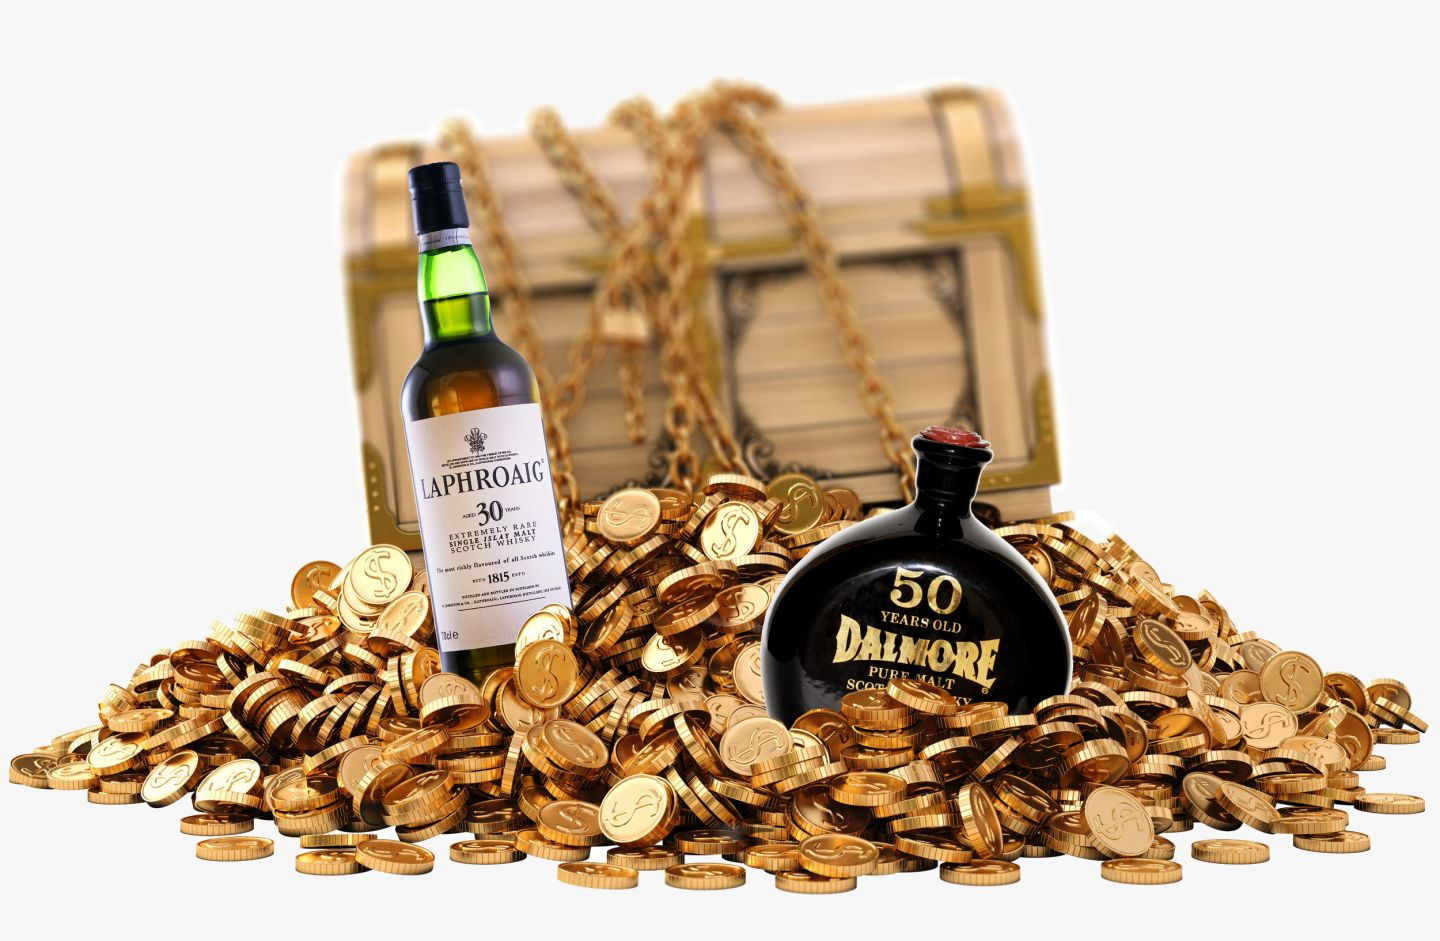 Whisky Bottles and Treasure Chest with Coins